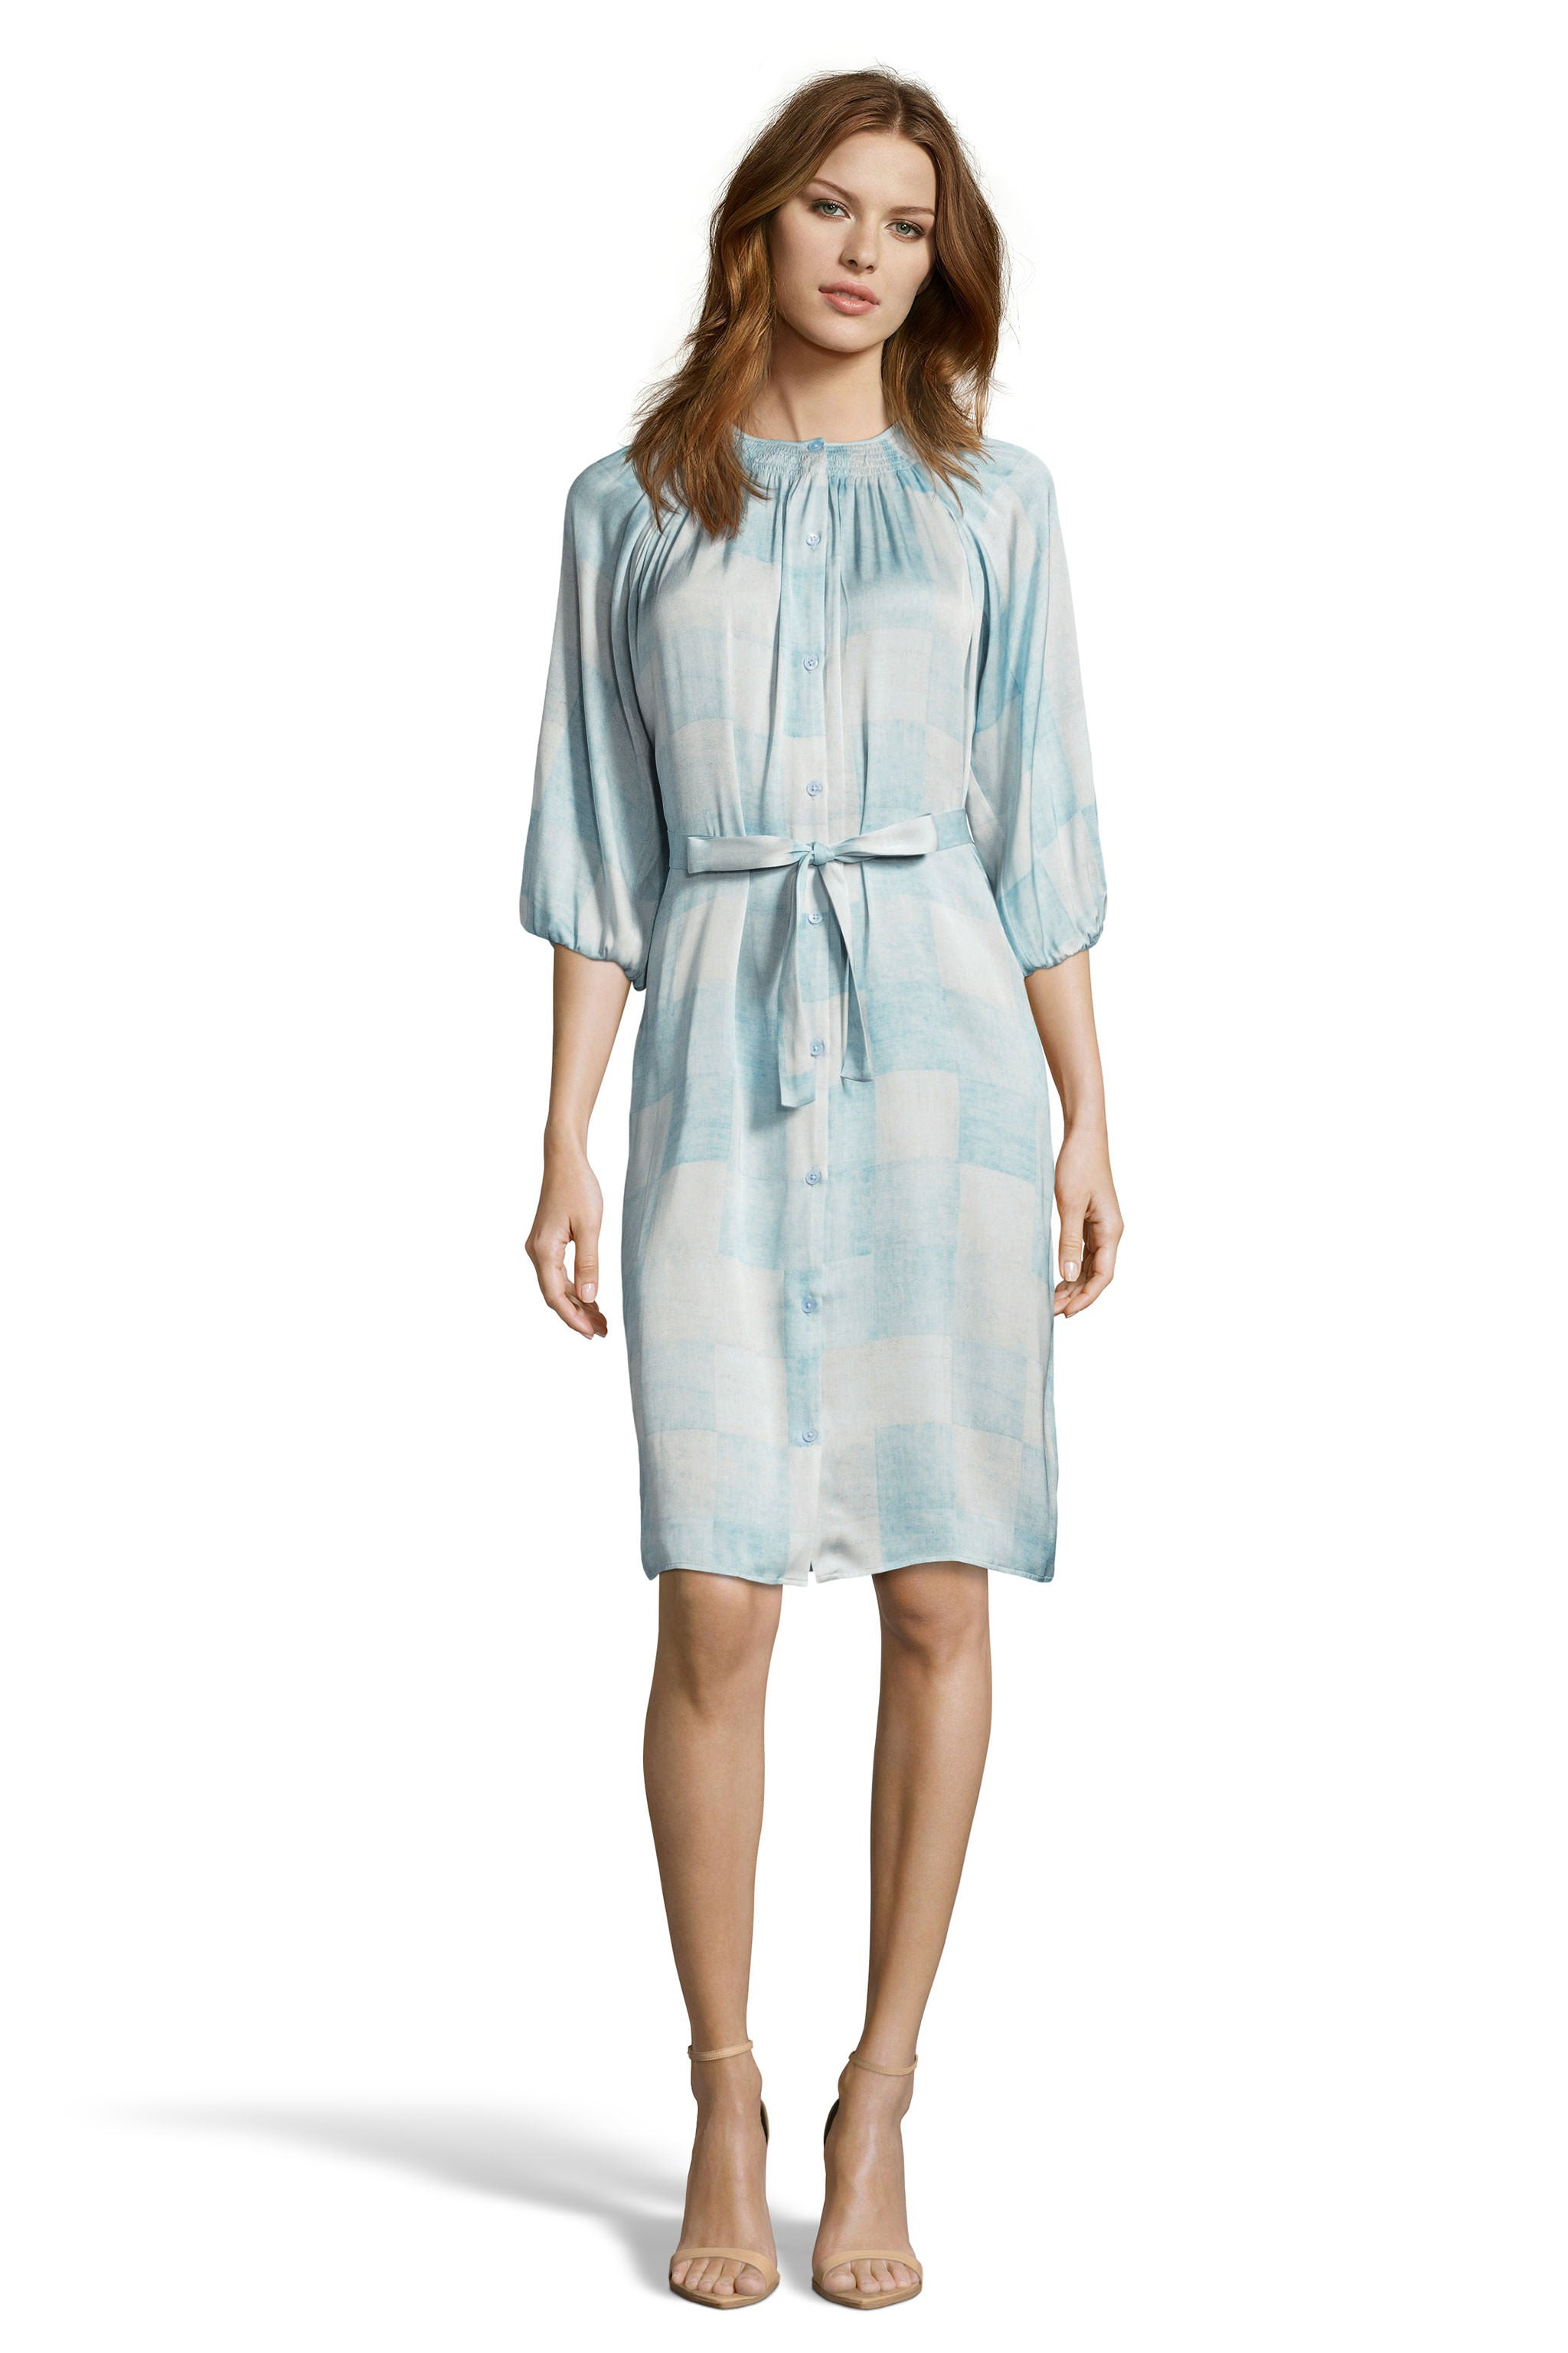 The Classic Knee Length Dress | Pastel Pastiche